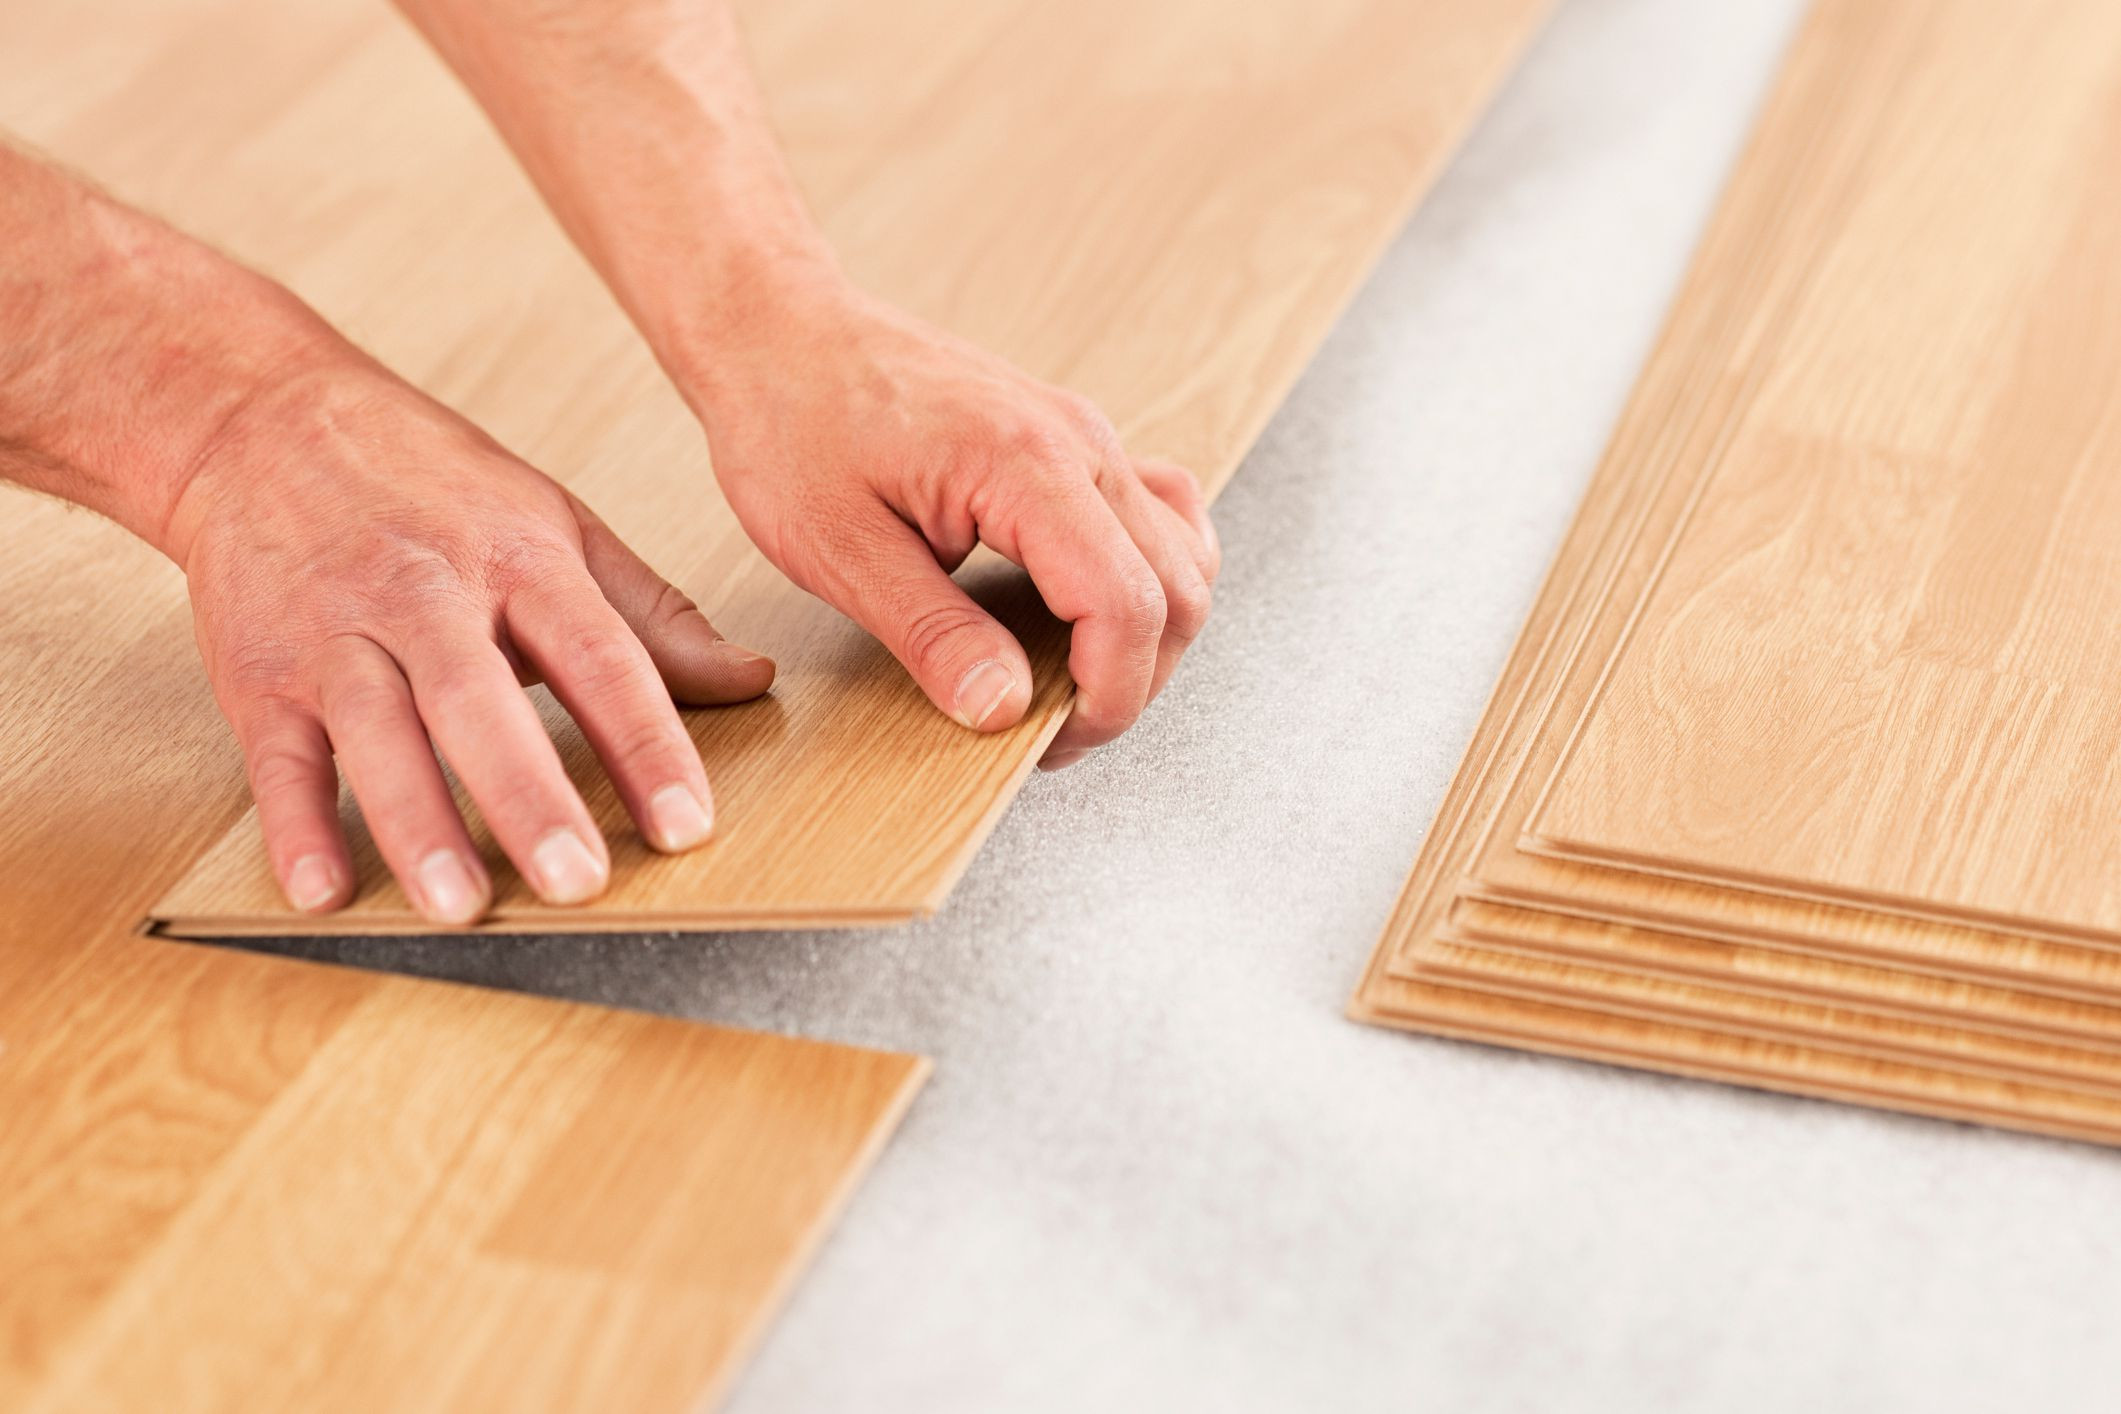 Gaps In Engineered Hardwood Floor Of Laminate Underlayment Pros and Cons Throughout Laminate Floor Install Gettyimages 154961561 588816495f9b58bdb3da1a02